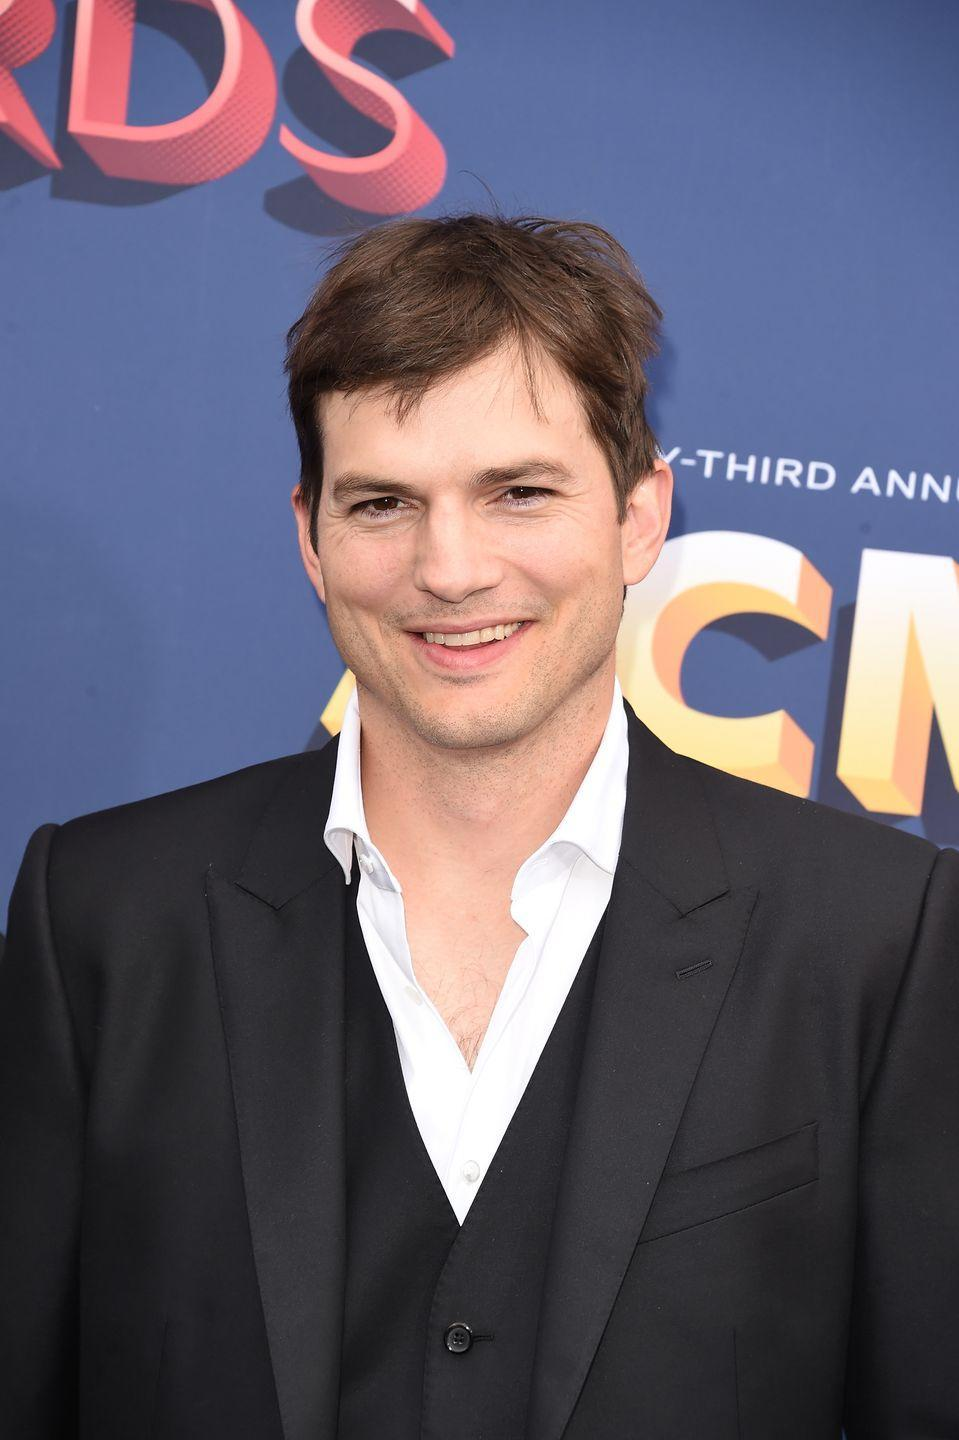 <p>Once the mustache comes off, Kutcher becomes the beloved star of <em>That 70's Show</em> all over again. </p>